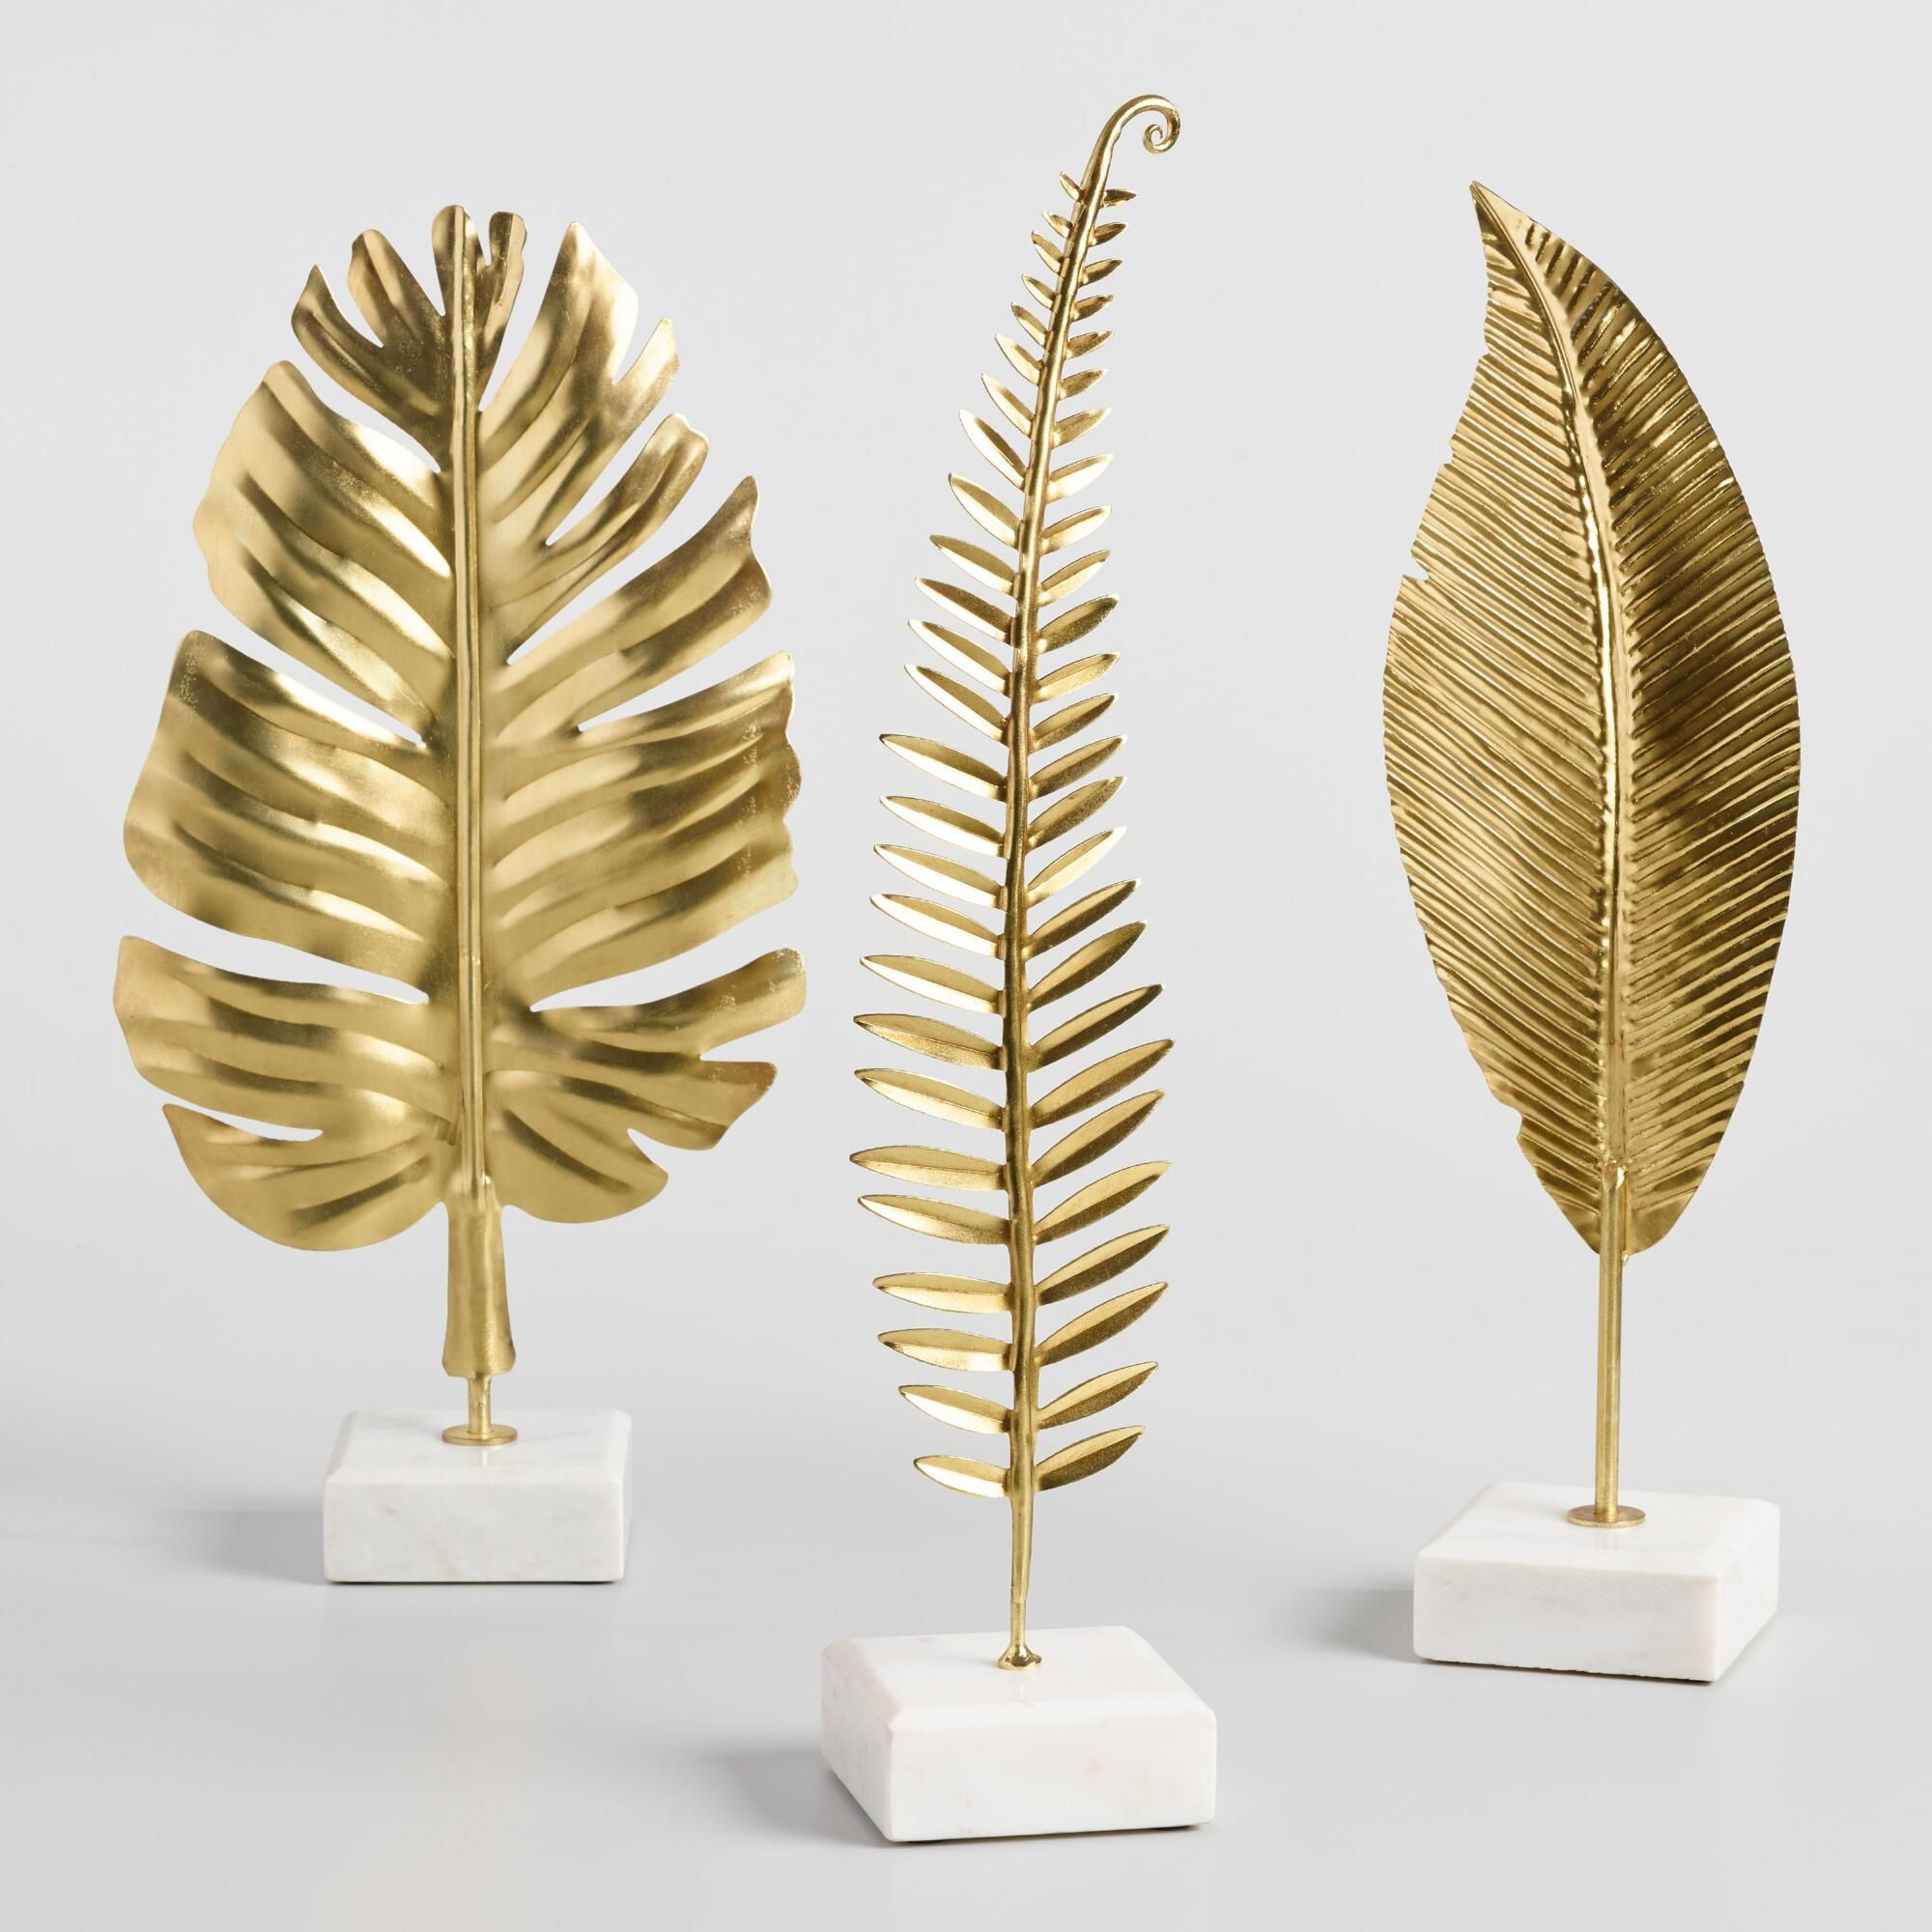 Gold Leaf on Marble Stand Decor Set of 3 by World Market  Gold Leaf on Marble Stand Decor Set of 3 by World Market